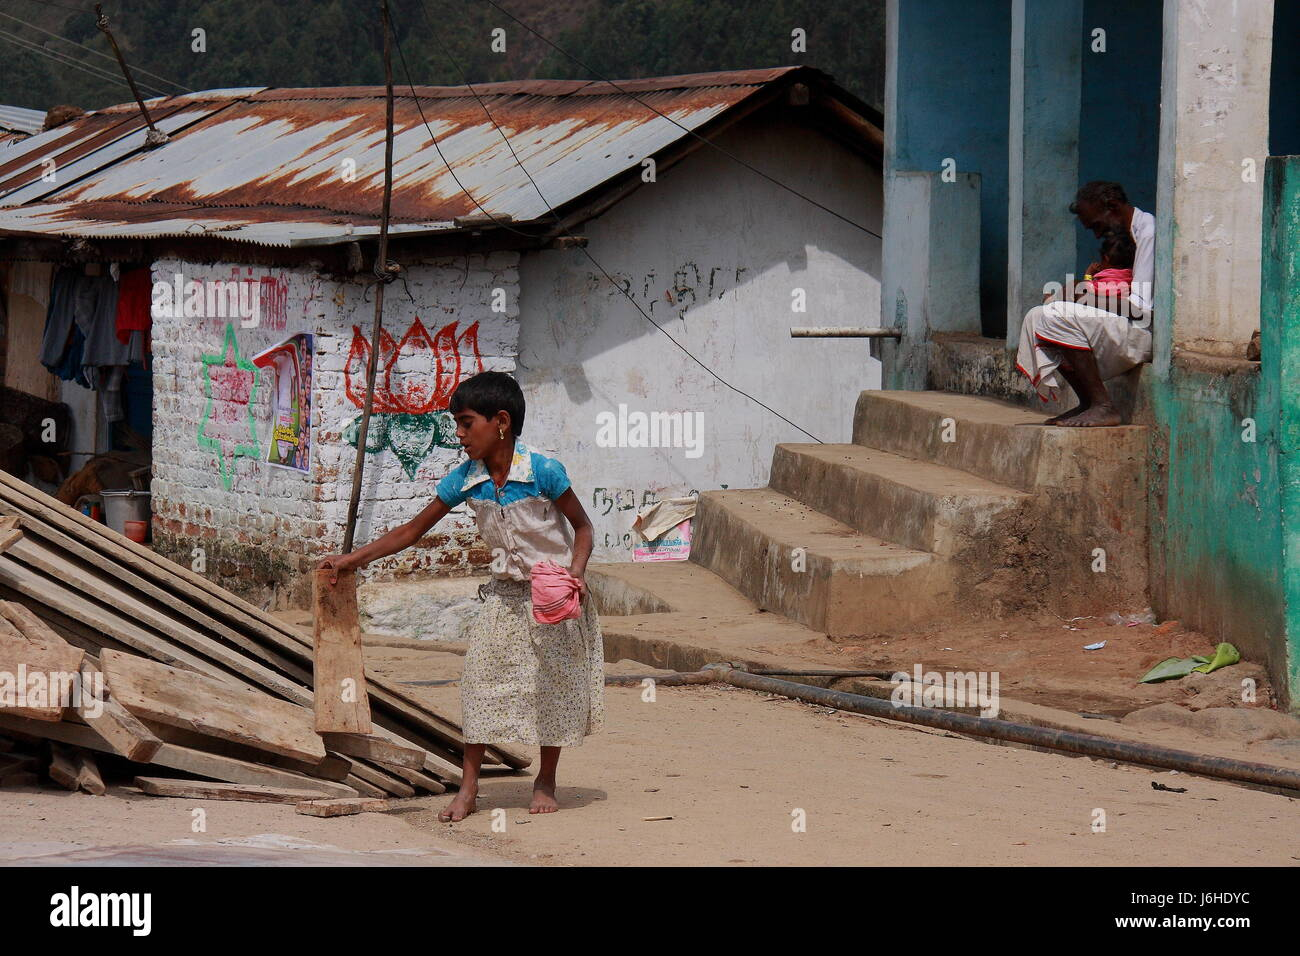 Child labour in India,shows the parents affection for son and daughter working,tamilnadu kerala boarder,south india,asia,PRADEEP - Stock Image